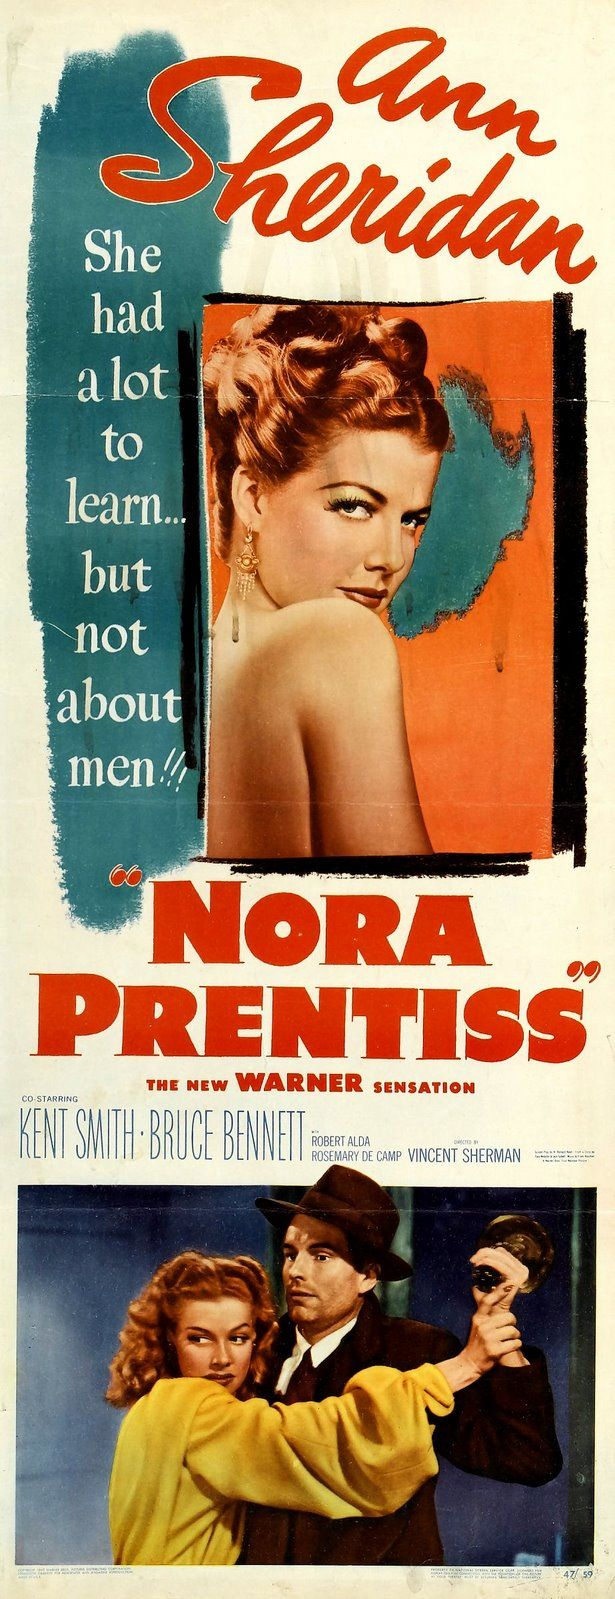 Nora Prentiss (1947) Film Noir of the Week Prentiss